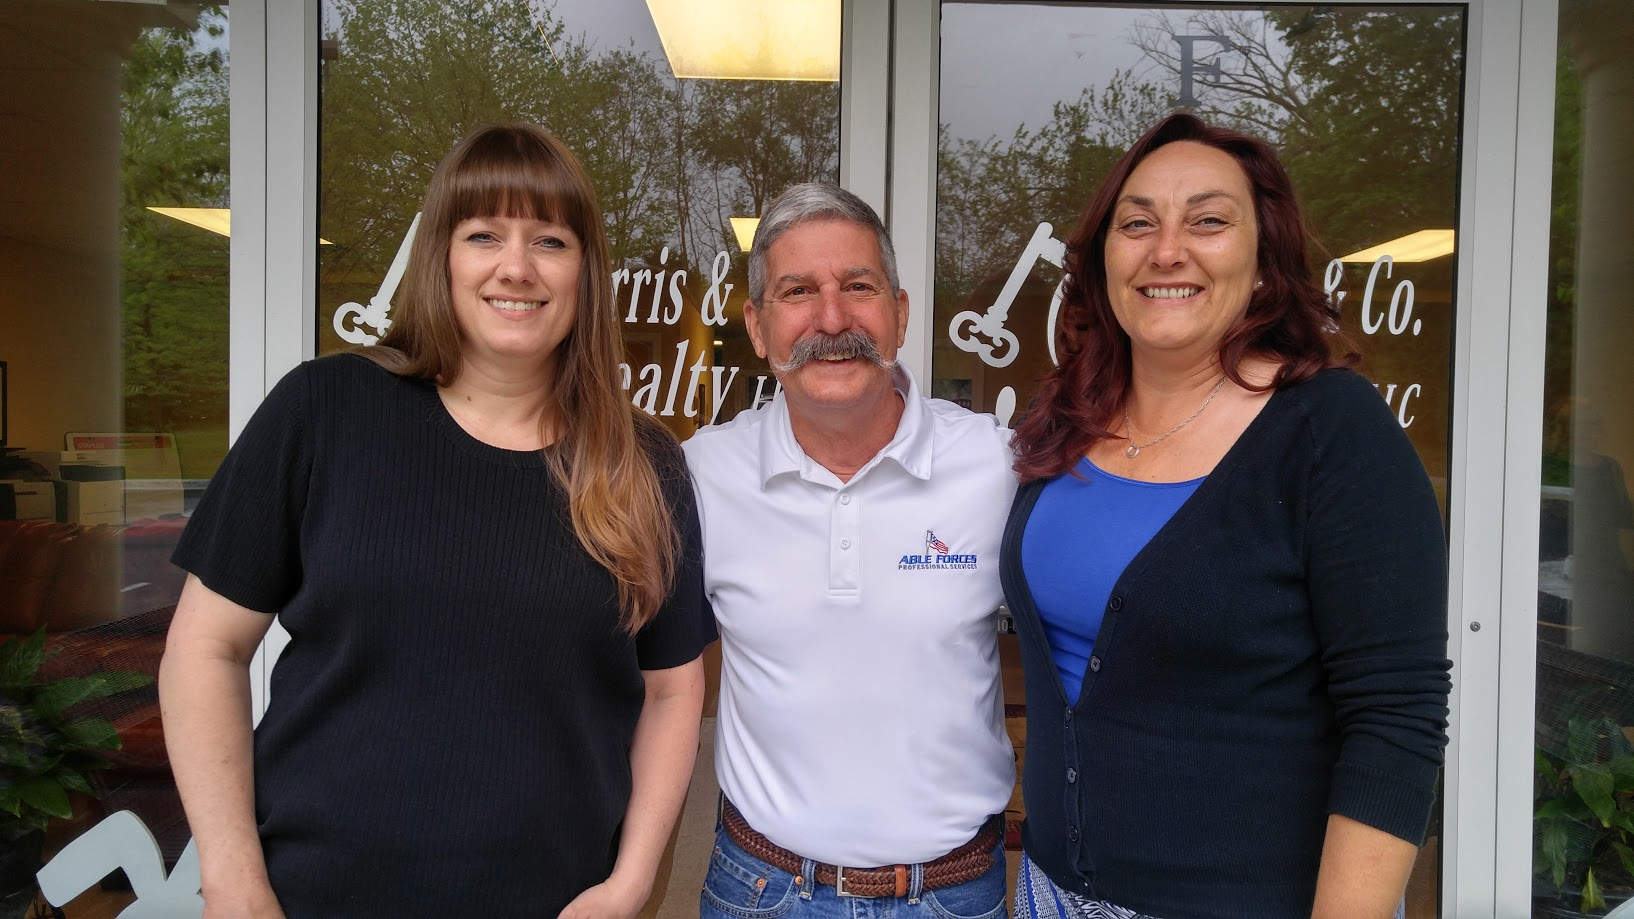 Pictured left to right: Christine Ruffner, Skip Rogers, Audrey Lowry